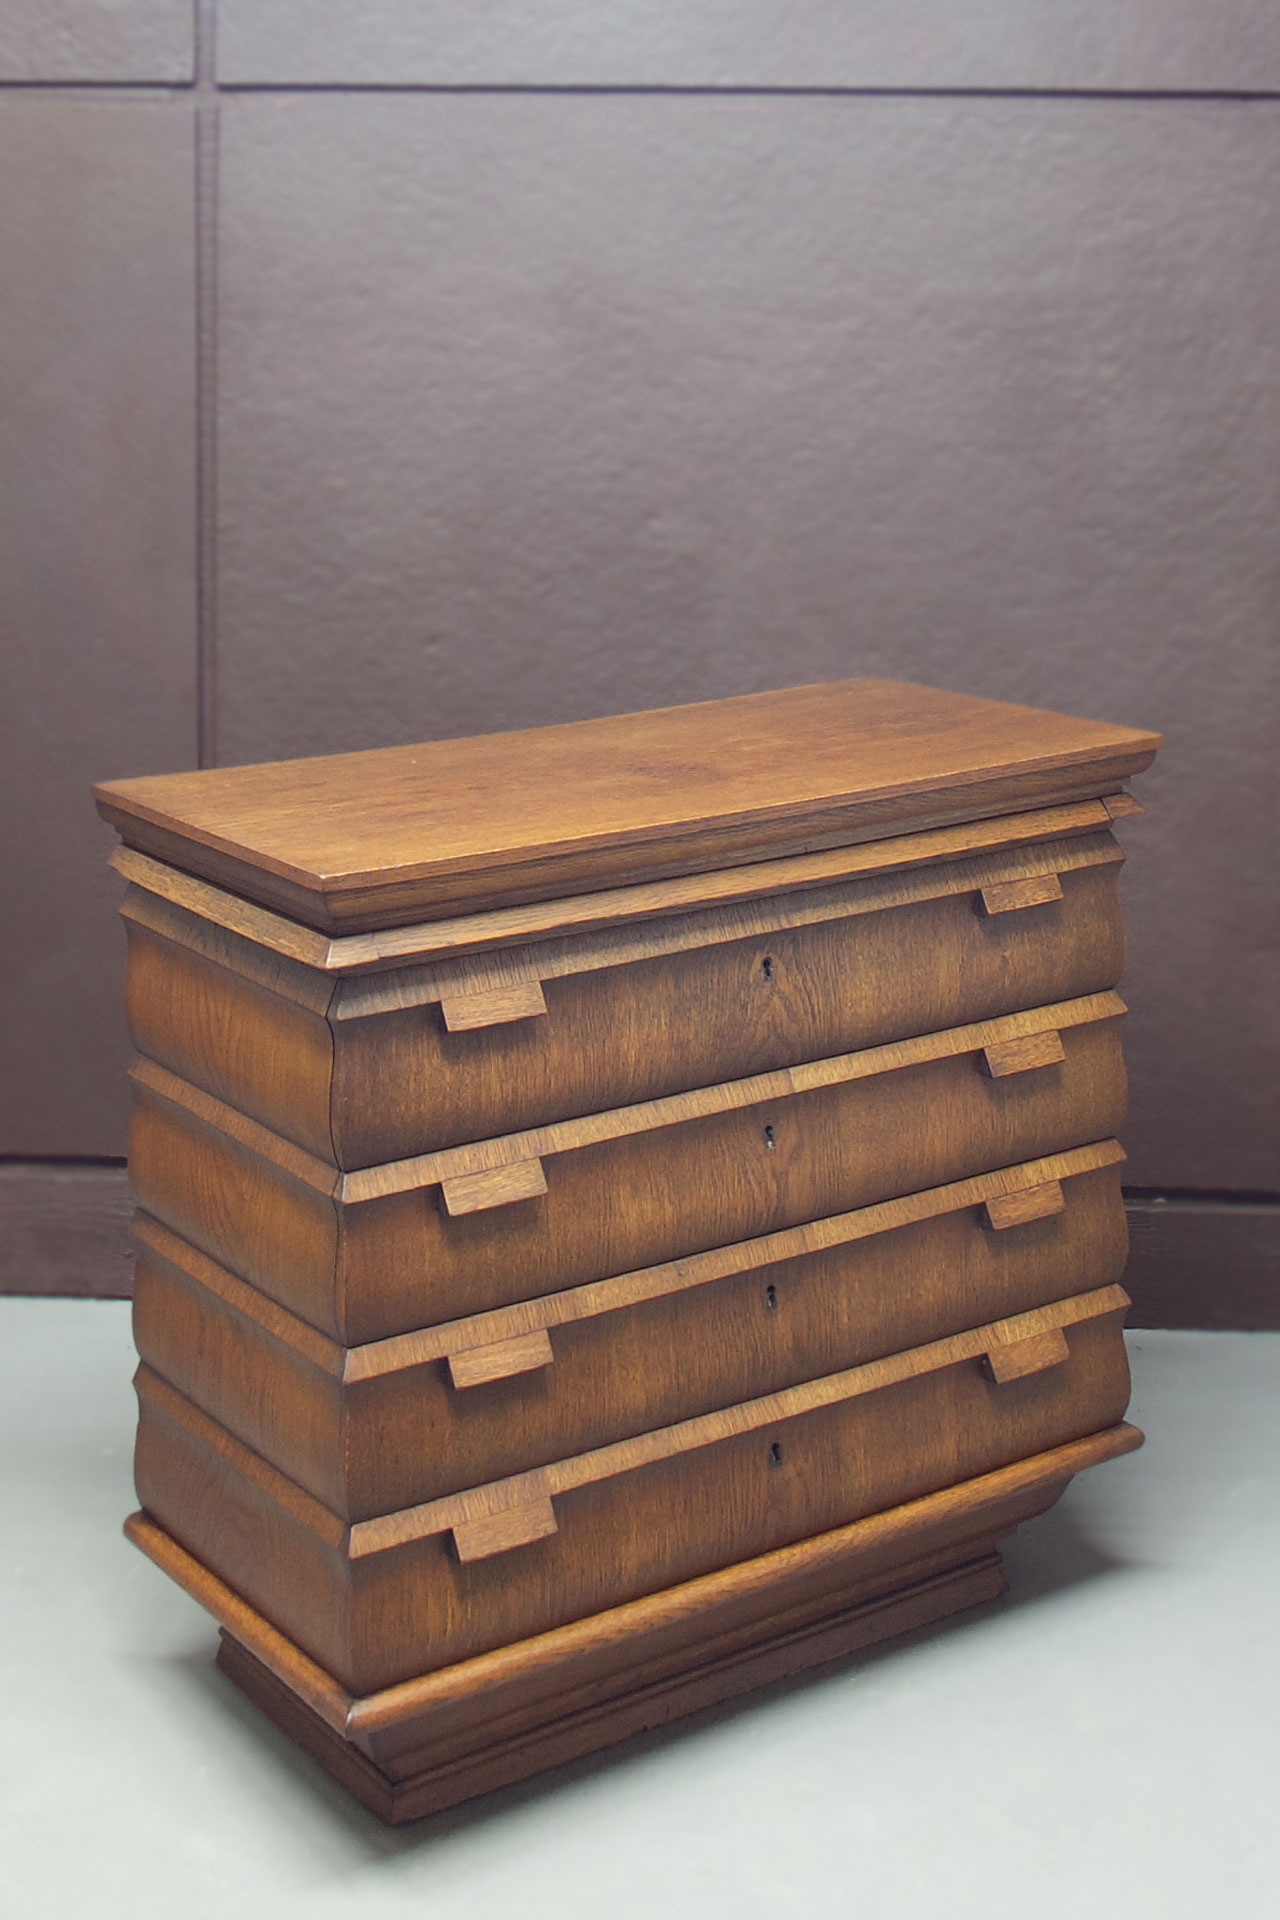 An expressionist rococo chest of drawers